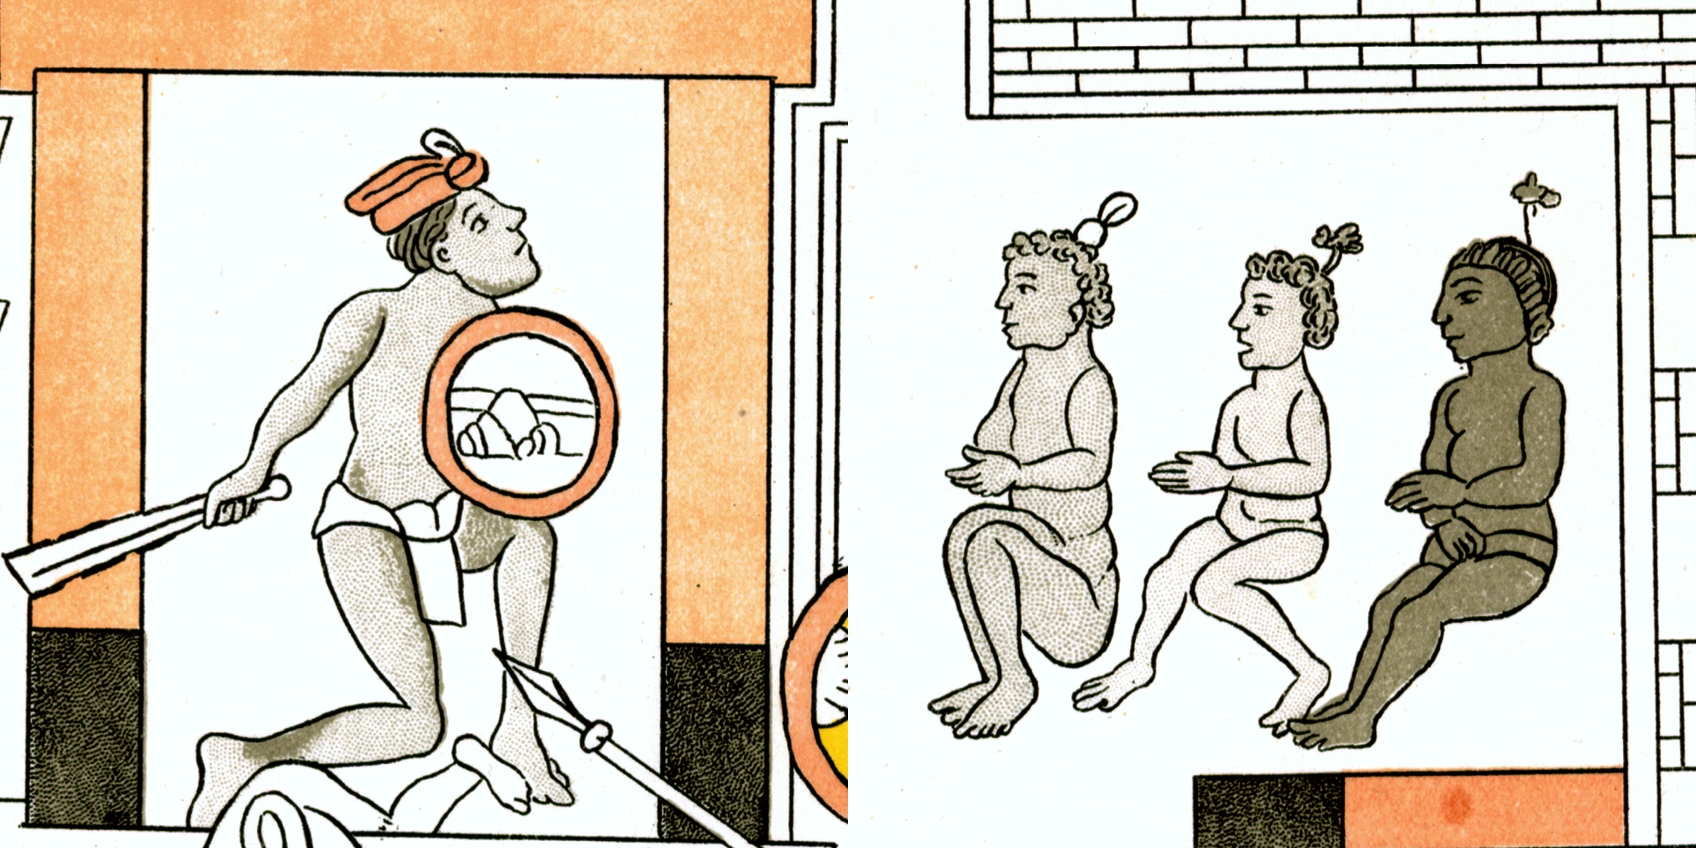 FIGURE 39. Black body paint worn by priests from Cholula, in Cell 10 of the Lienzo de Tlaxcala.